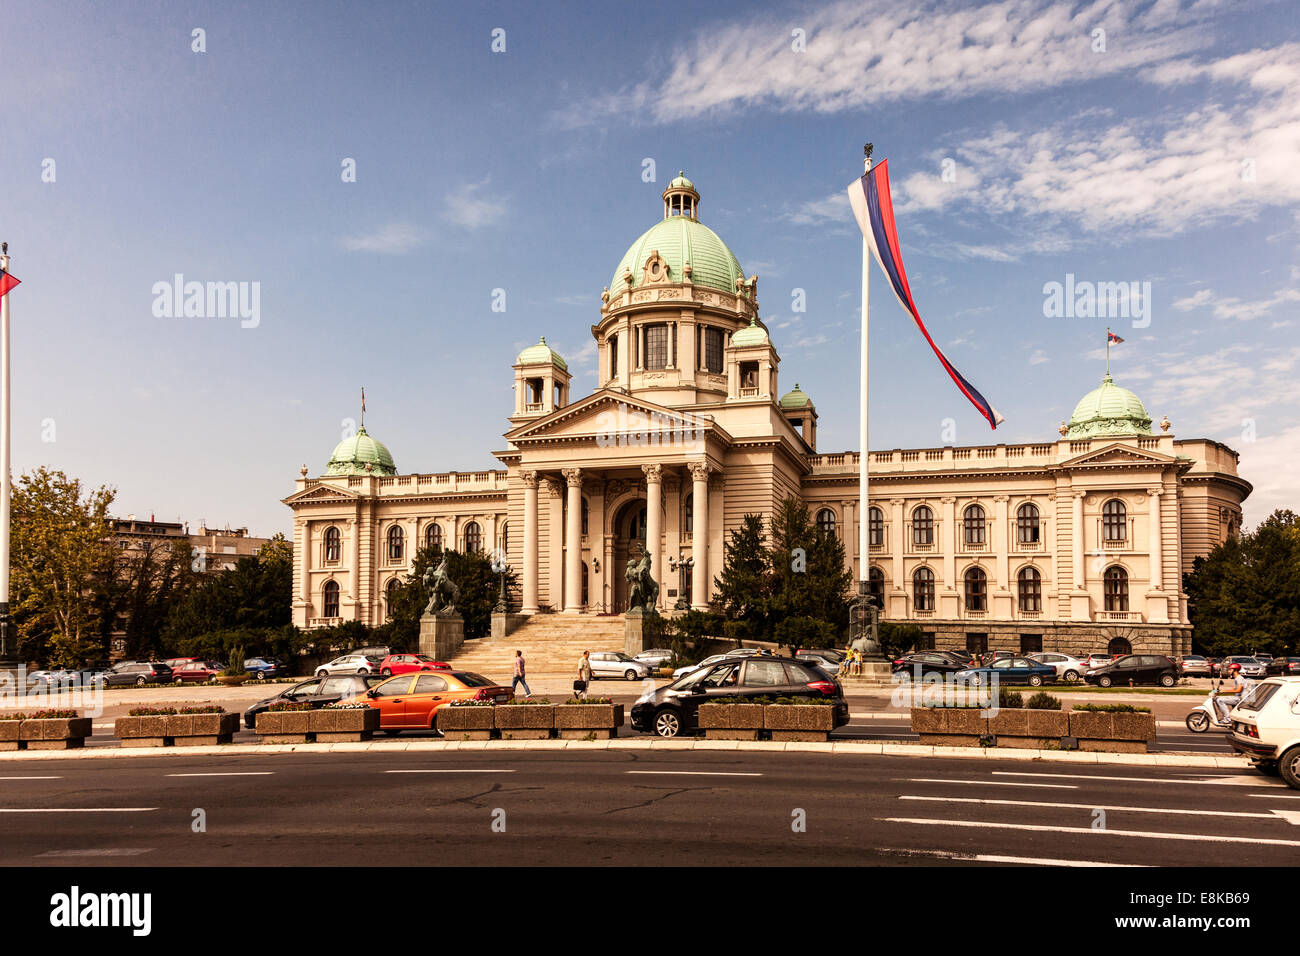 National Assembly of the Republic of Serbia,Belgrade,Serbia - Stock Image